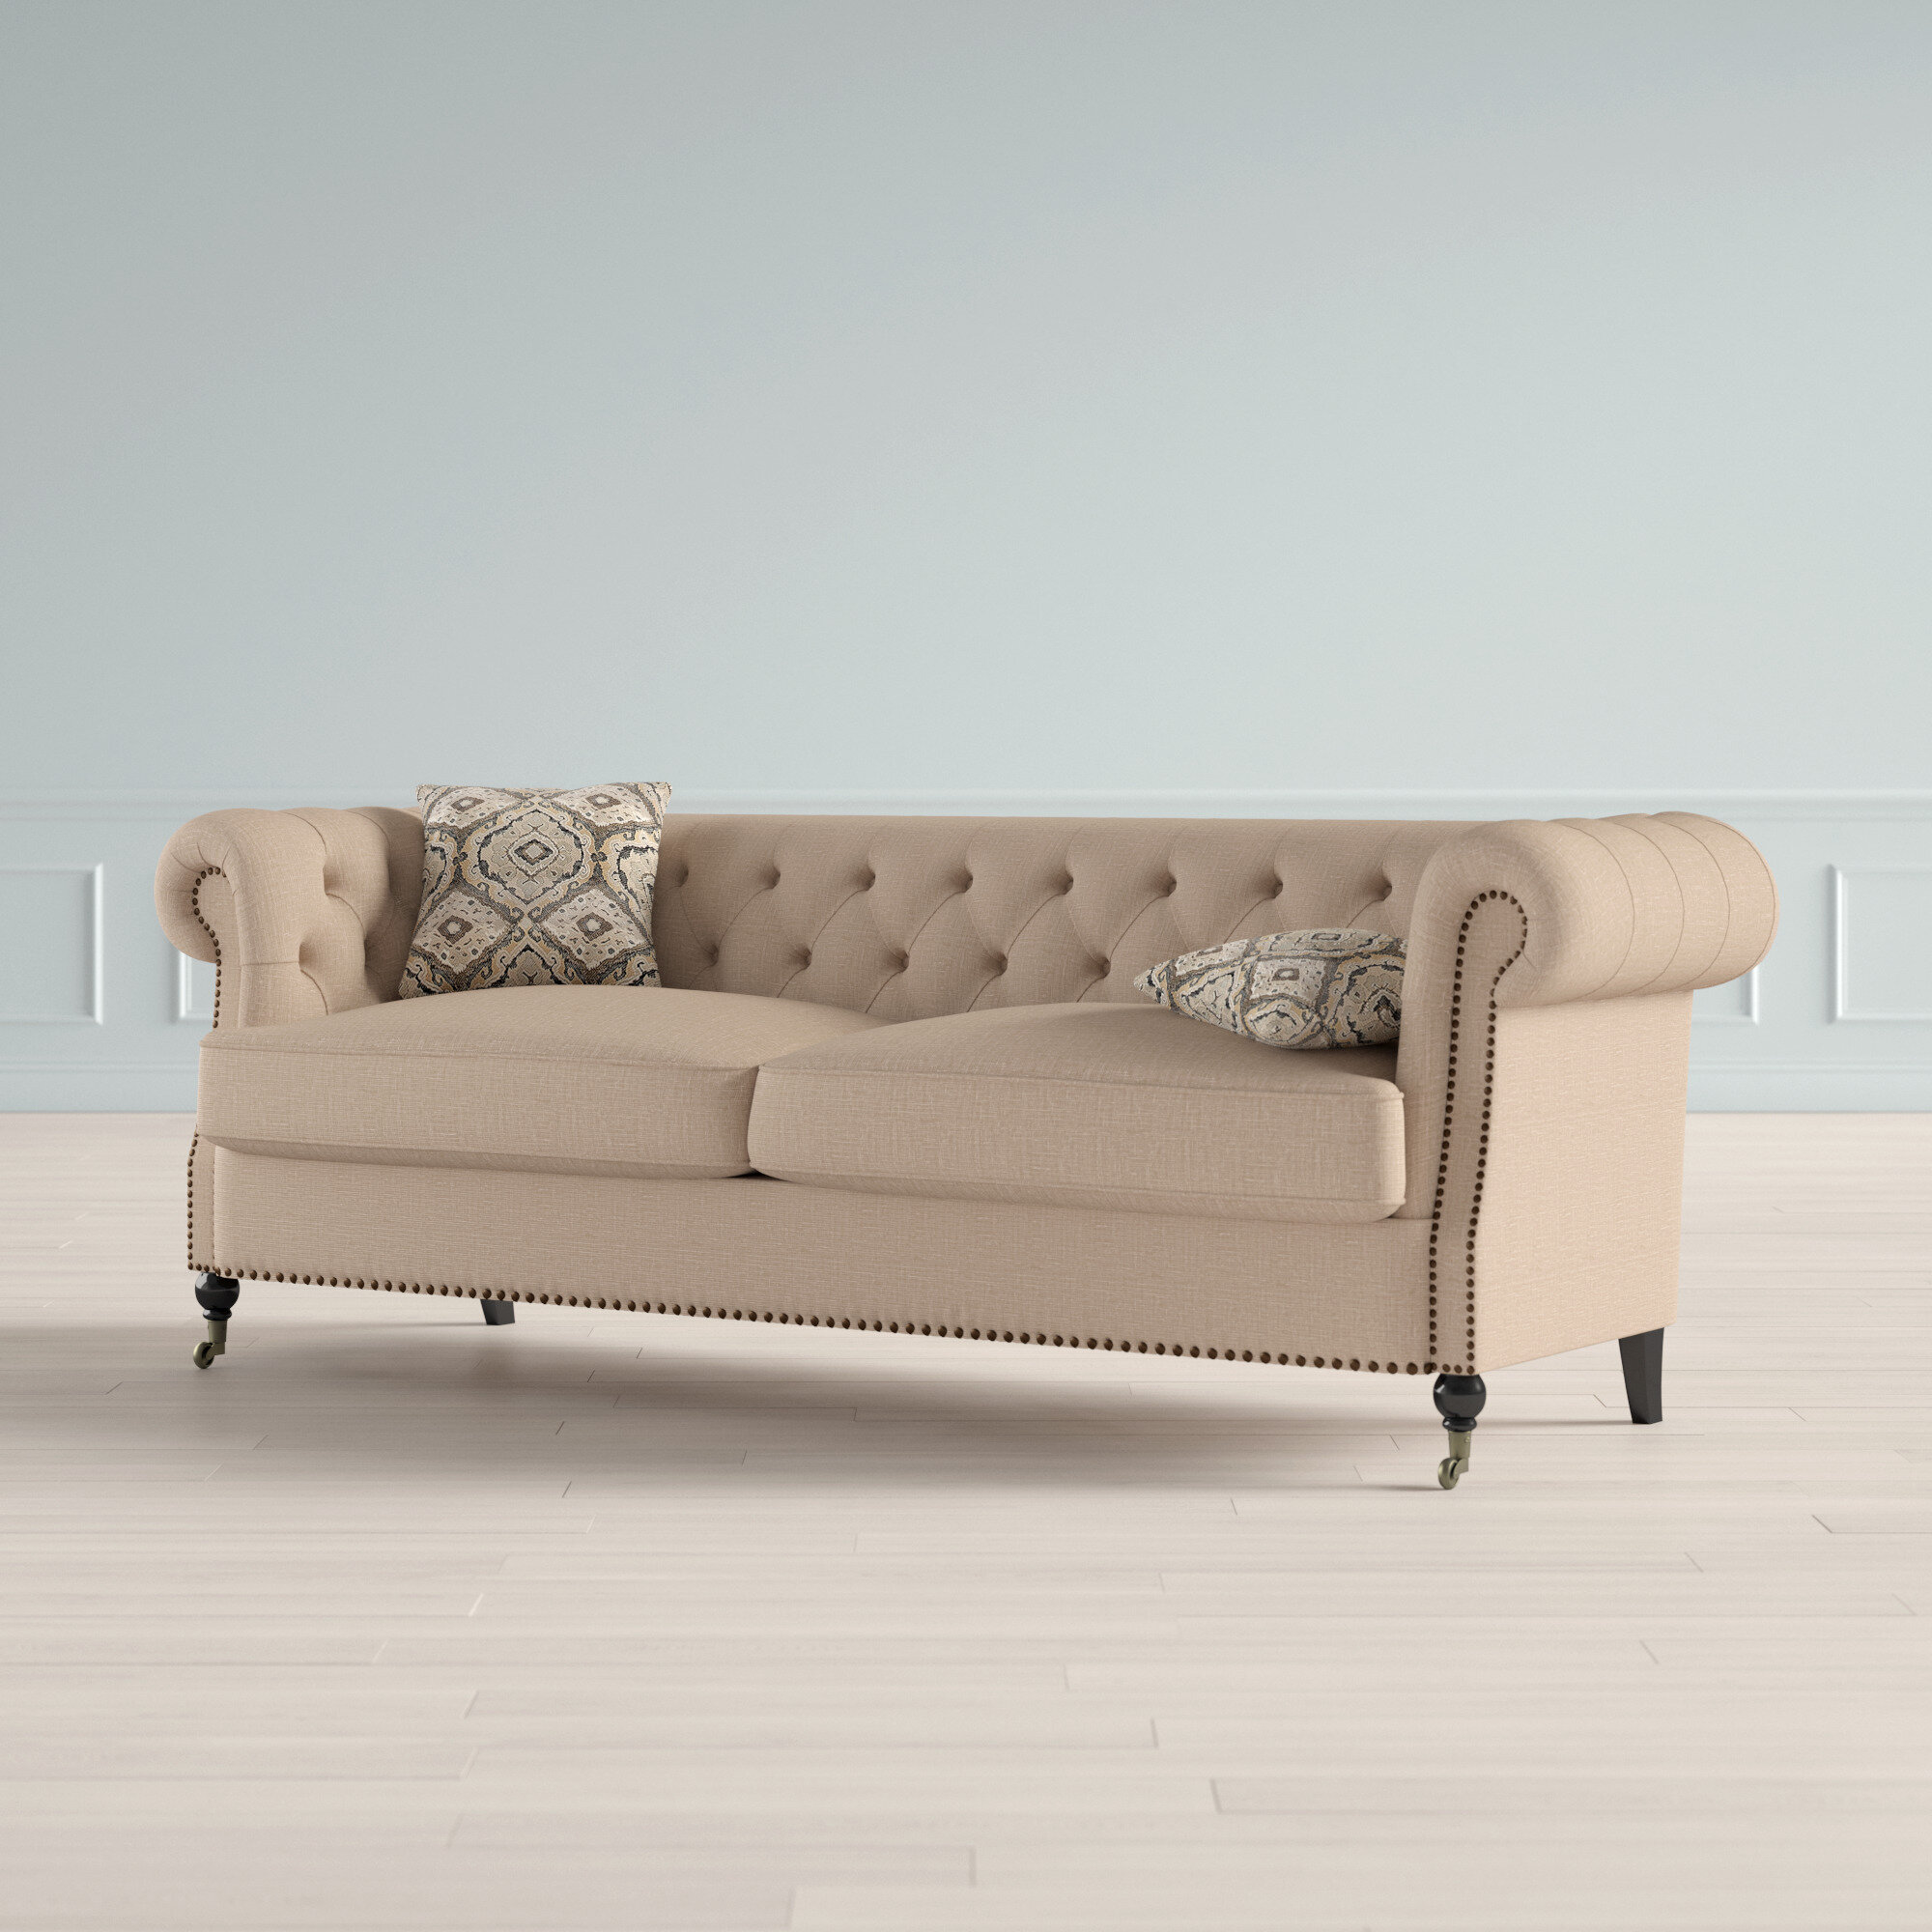 Excellent Calila Chesterfield Sofa Inzonedesignstudio Interior Chair Design Inzonedesignstudiocom